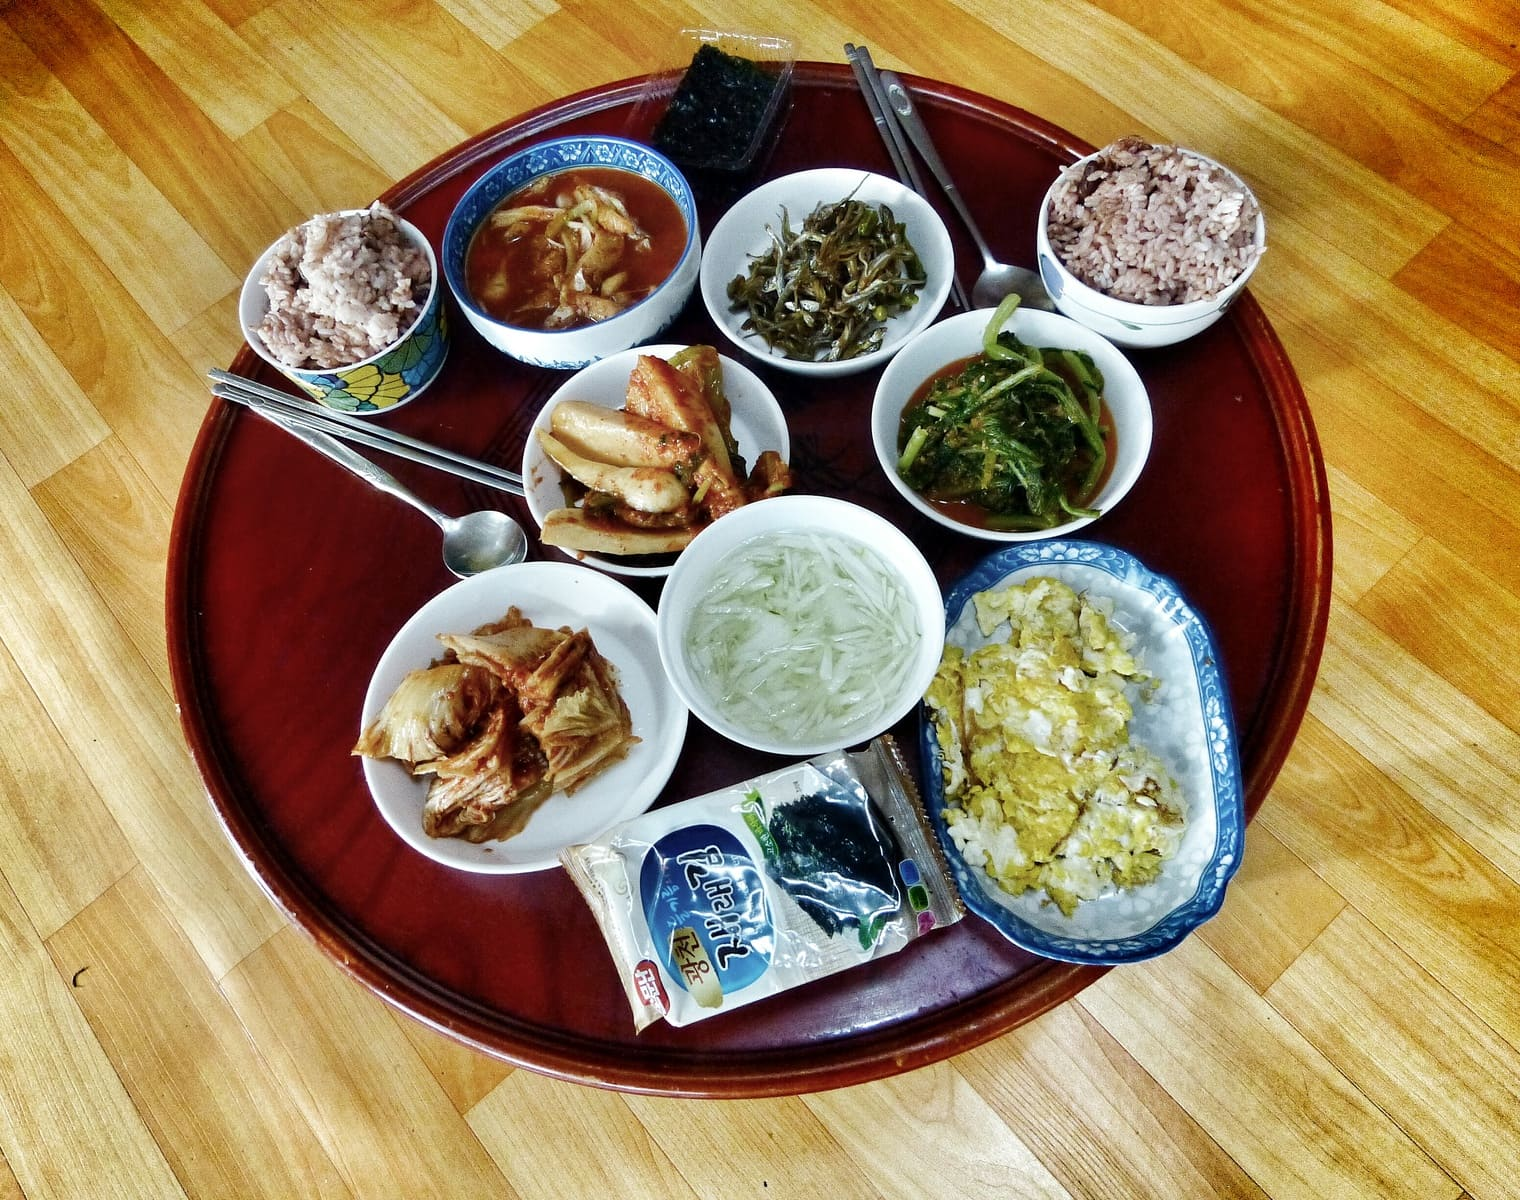 typical Korean house meal